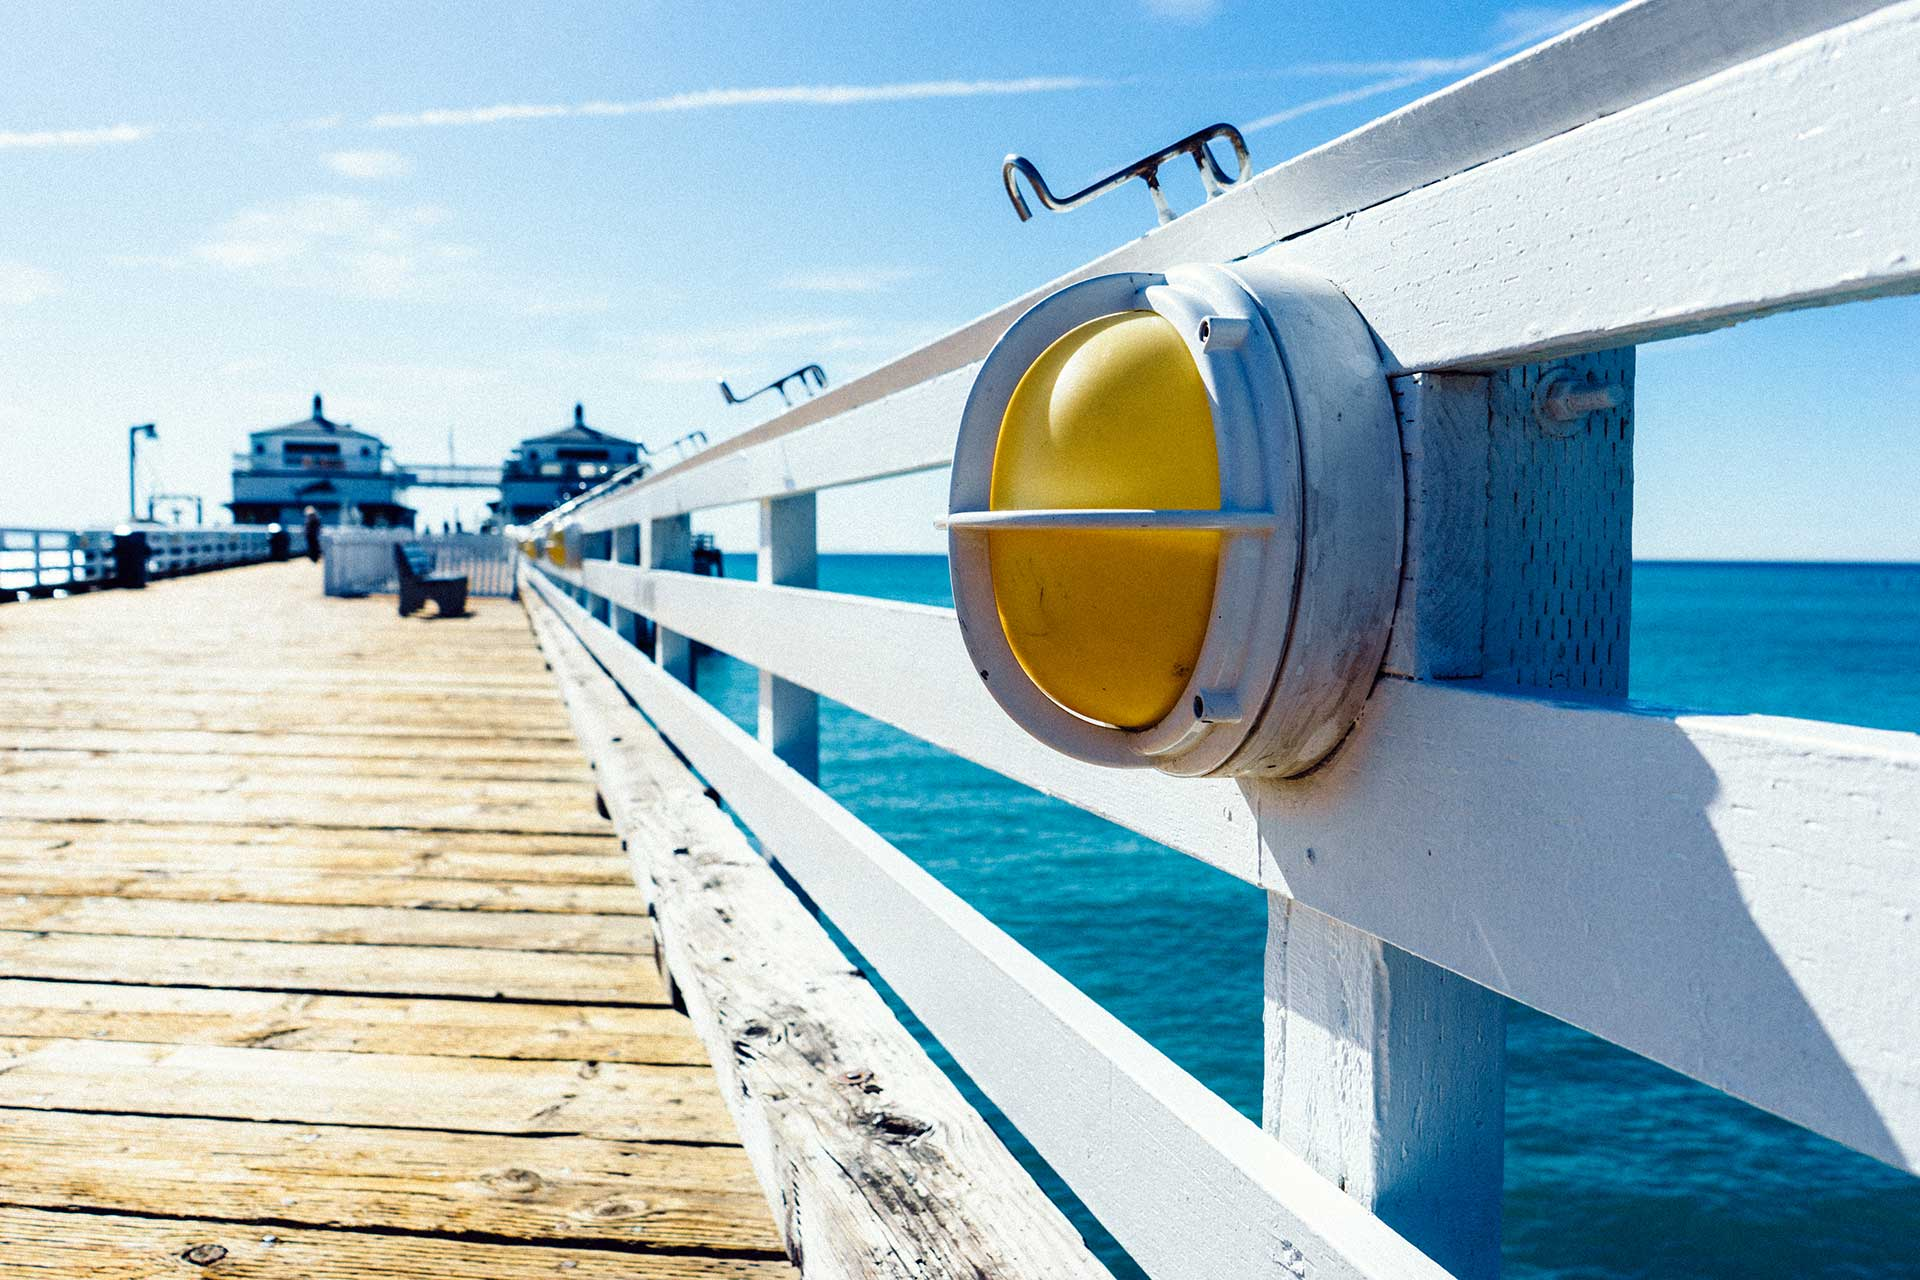 jetty-landing-stage-light-sea